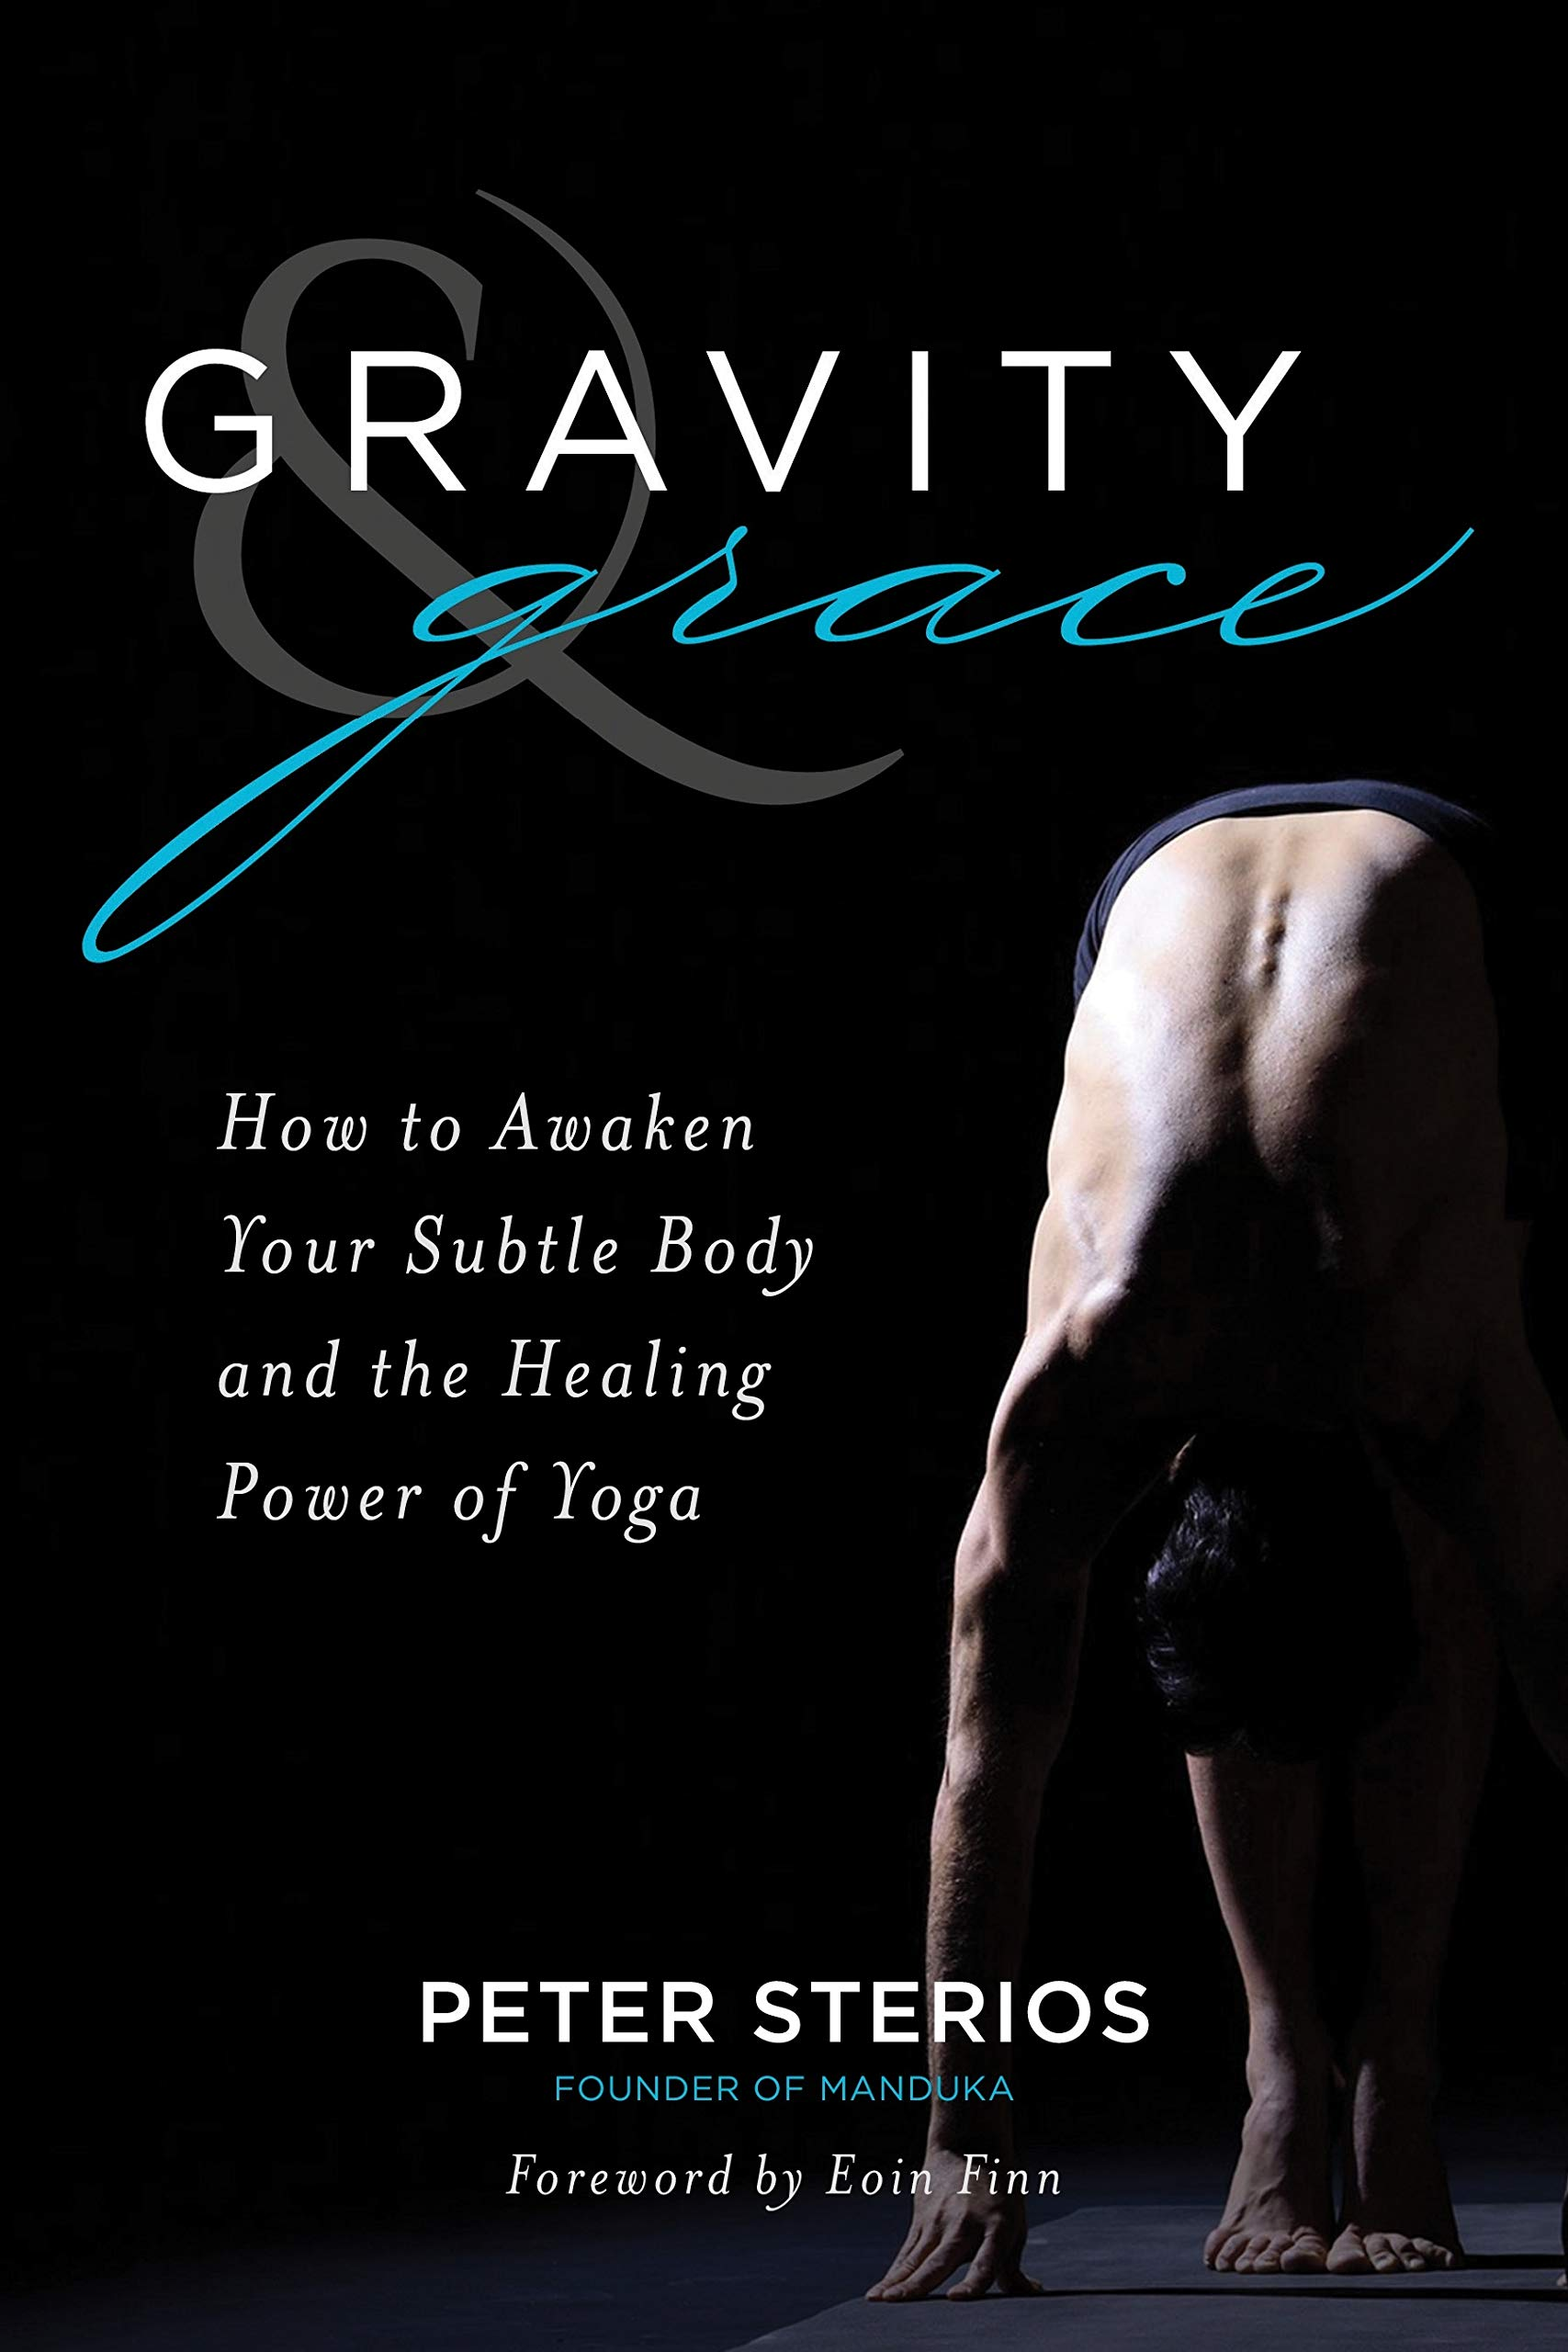 Gravity And Grace How To Awaken Your Subtle Body With The Healing Power Of Yoga How To Awaken Your Subtle Body And The Healing Power Of Yoga Sterios Peter Fremdsprachige Bücher